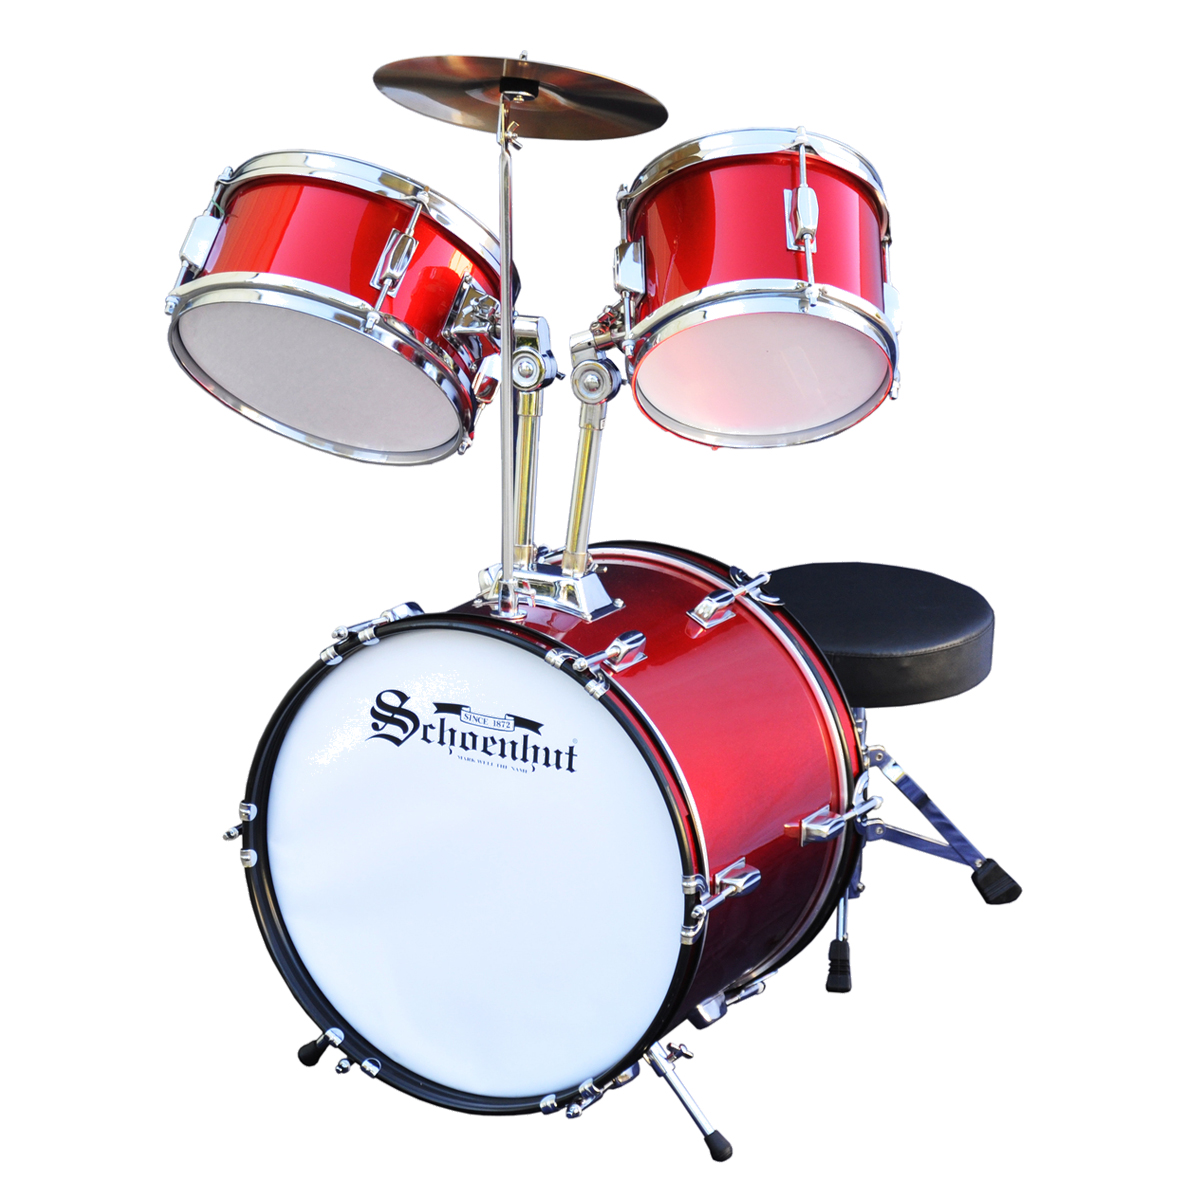 Schoenhut Drum Set